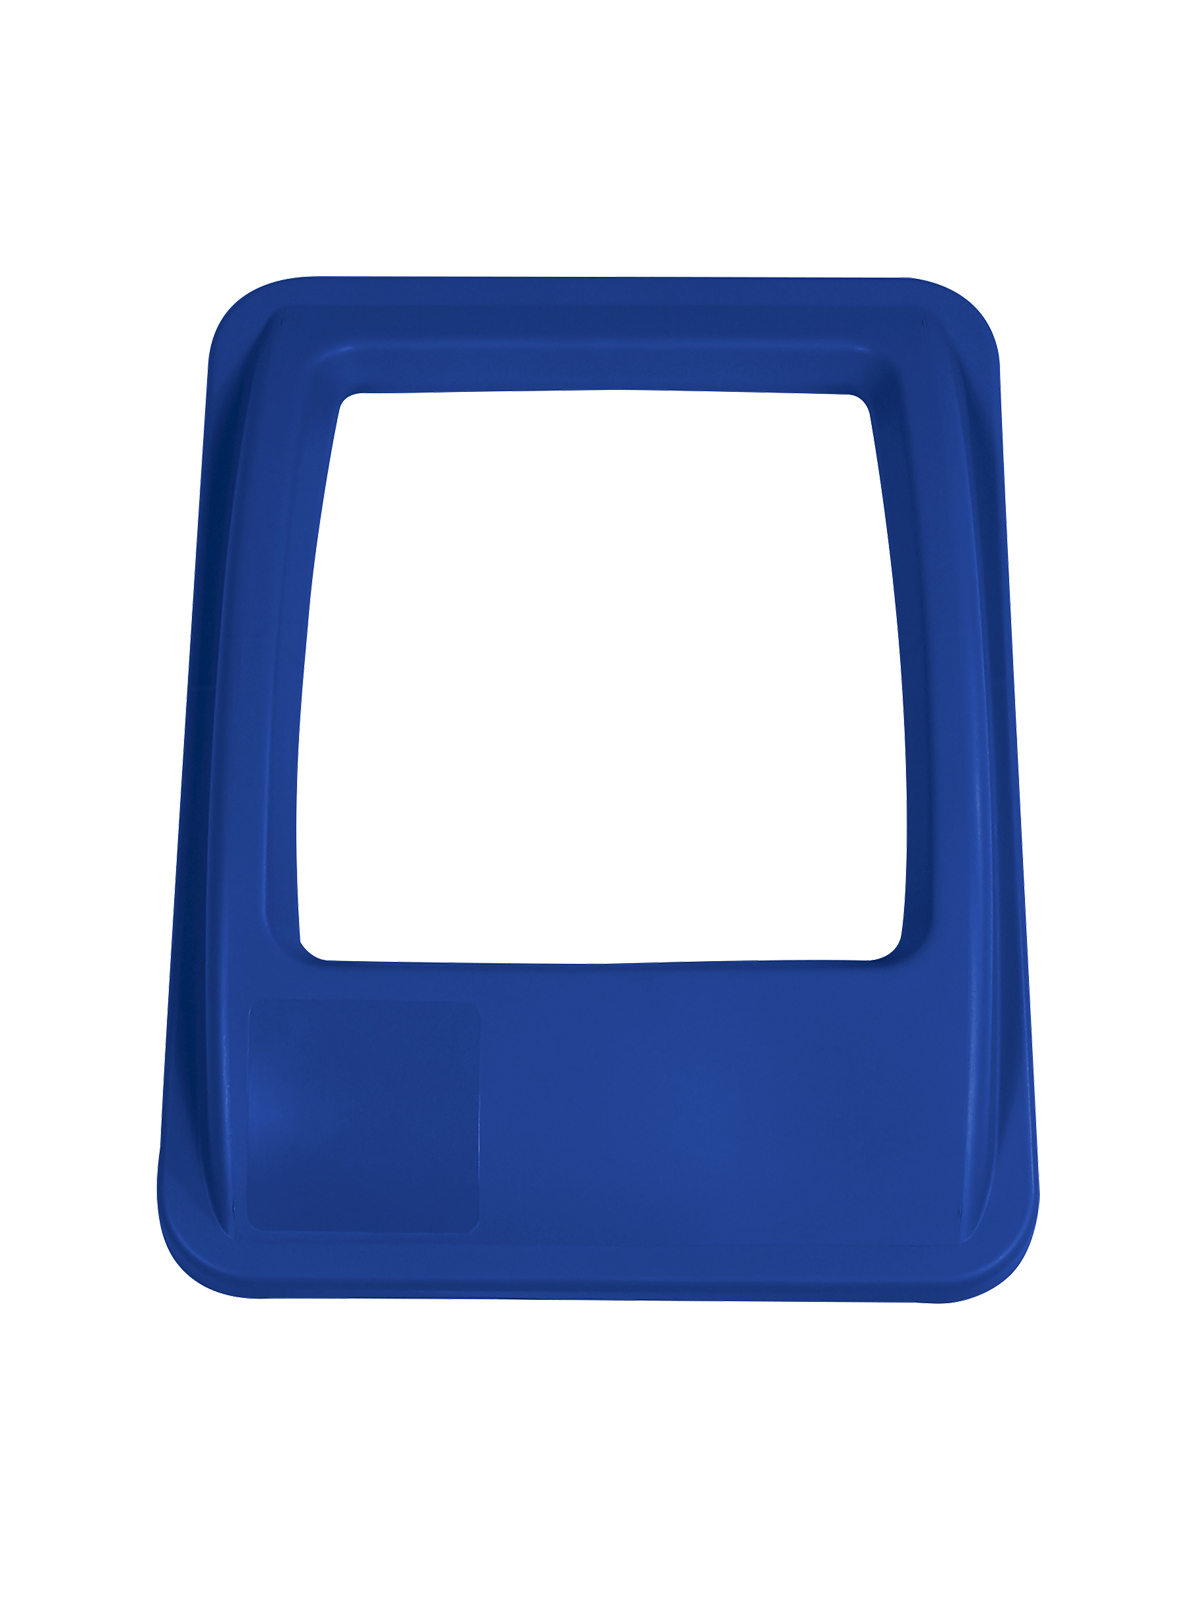 WASTE WATCHER® XL - LID - FULL OPENING - ROYAL BLUE title=